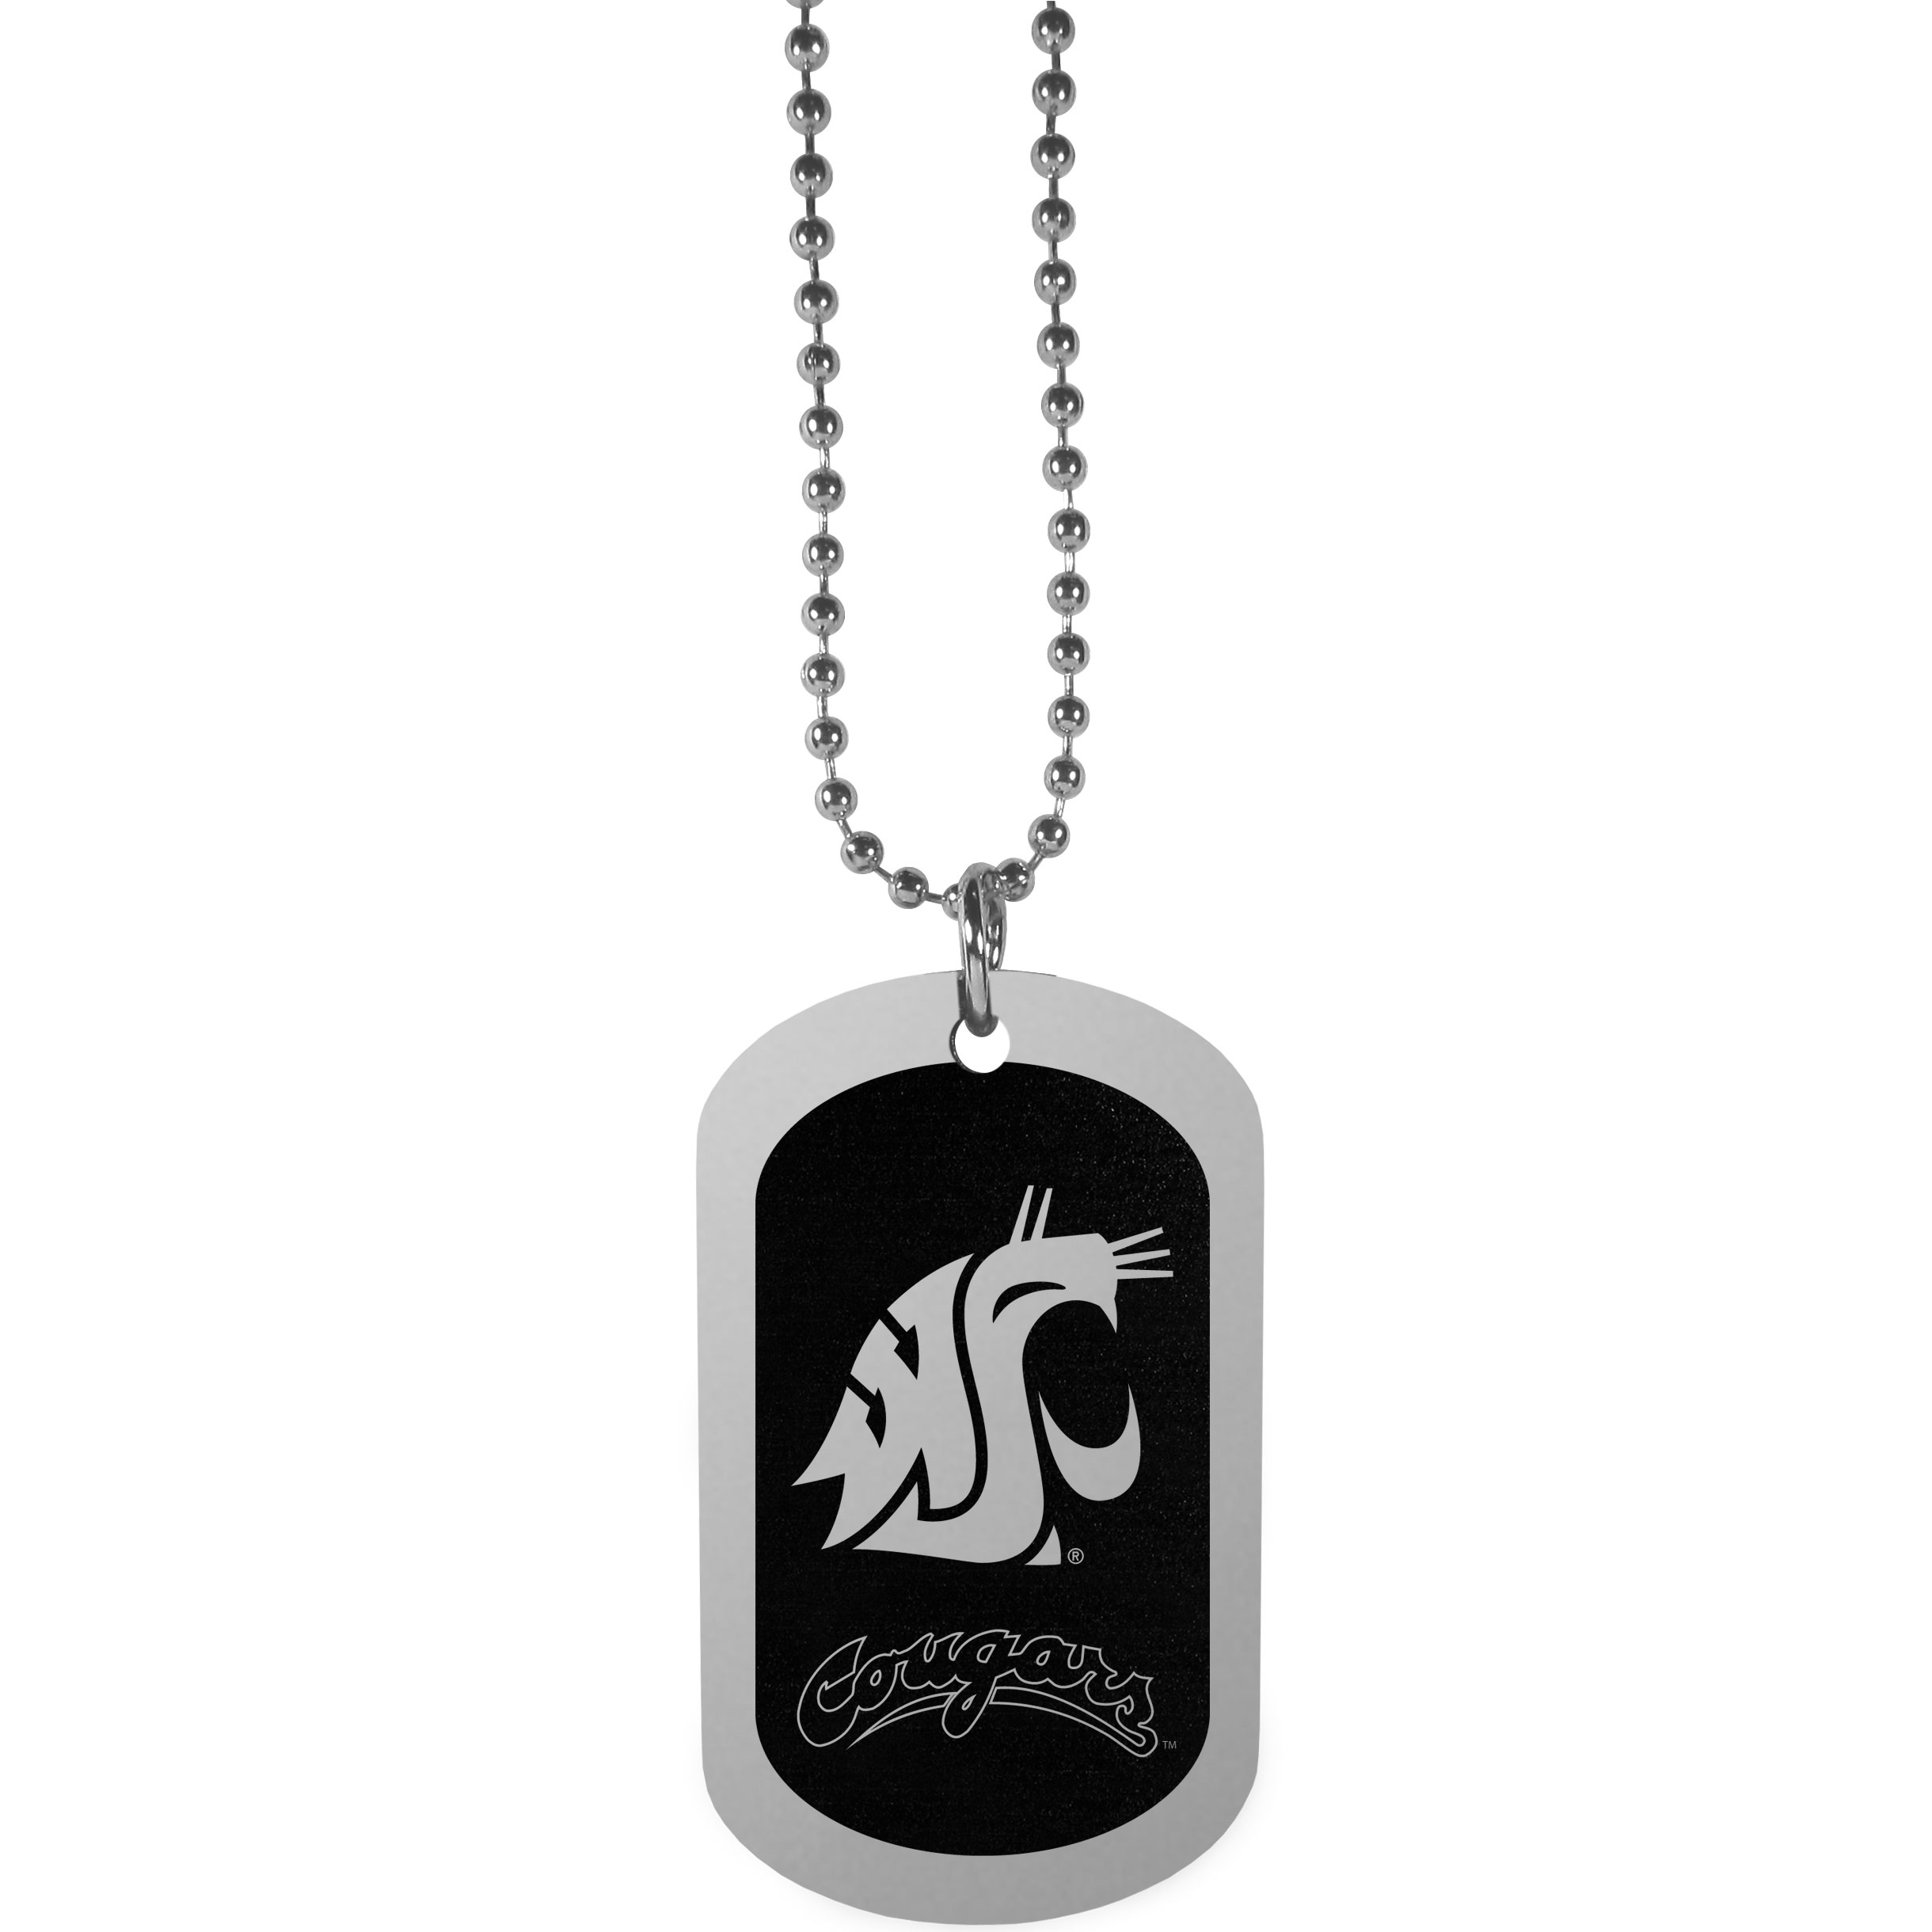 Washington St. Cougars Chrome Tag Necklace - Dog tag necklaces are a fashion statement that is here to stay. The sporty version of the classic tag features a black printed over a high polish tag to create a bold and sporty look. The tag comes on a 26 inch ball chain with a ball and joint clasp. Any Washington St. Cougars would be proud to wear this attractive fashion accessory.